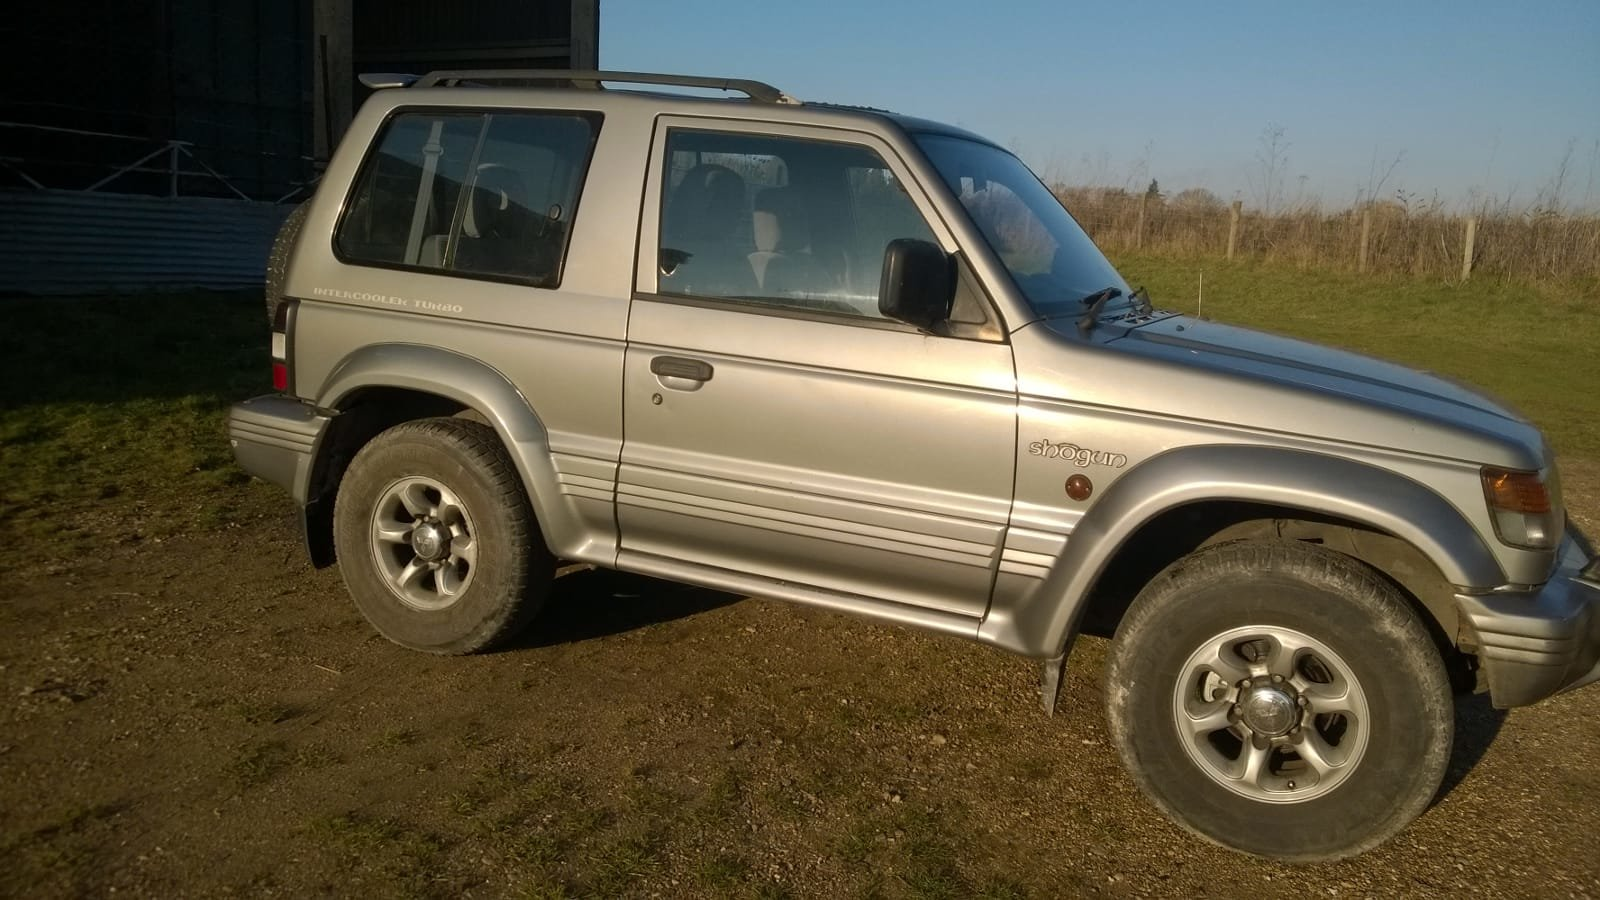 1995 Mitsubishi Shogun Swb For Sale (picture 1 of 5)